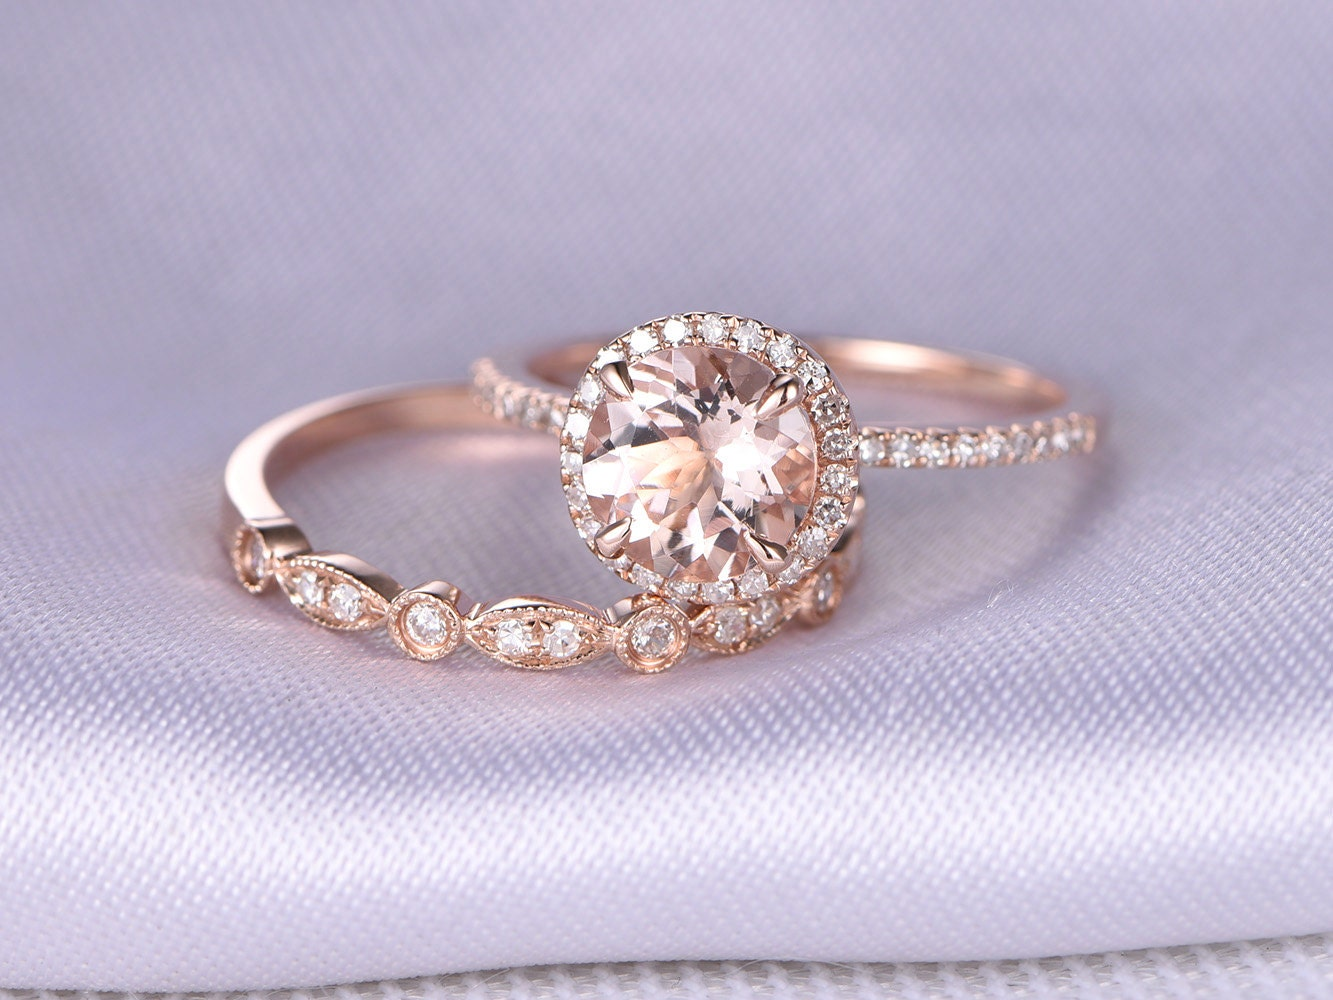 art deco ring vintage wedding rings Morganite Engagement ring 2pcs Wedding Ring Set 14k Rose gold Art Deco diamond Matching Band 7mm Round Stone Personalized for her Custom